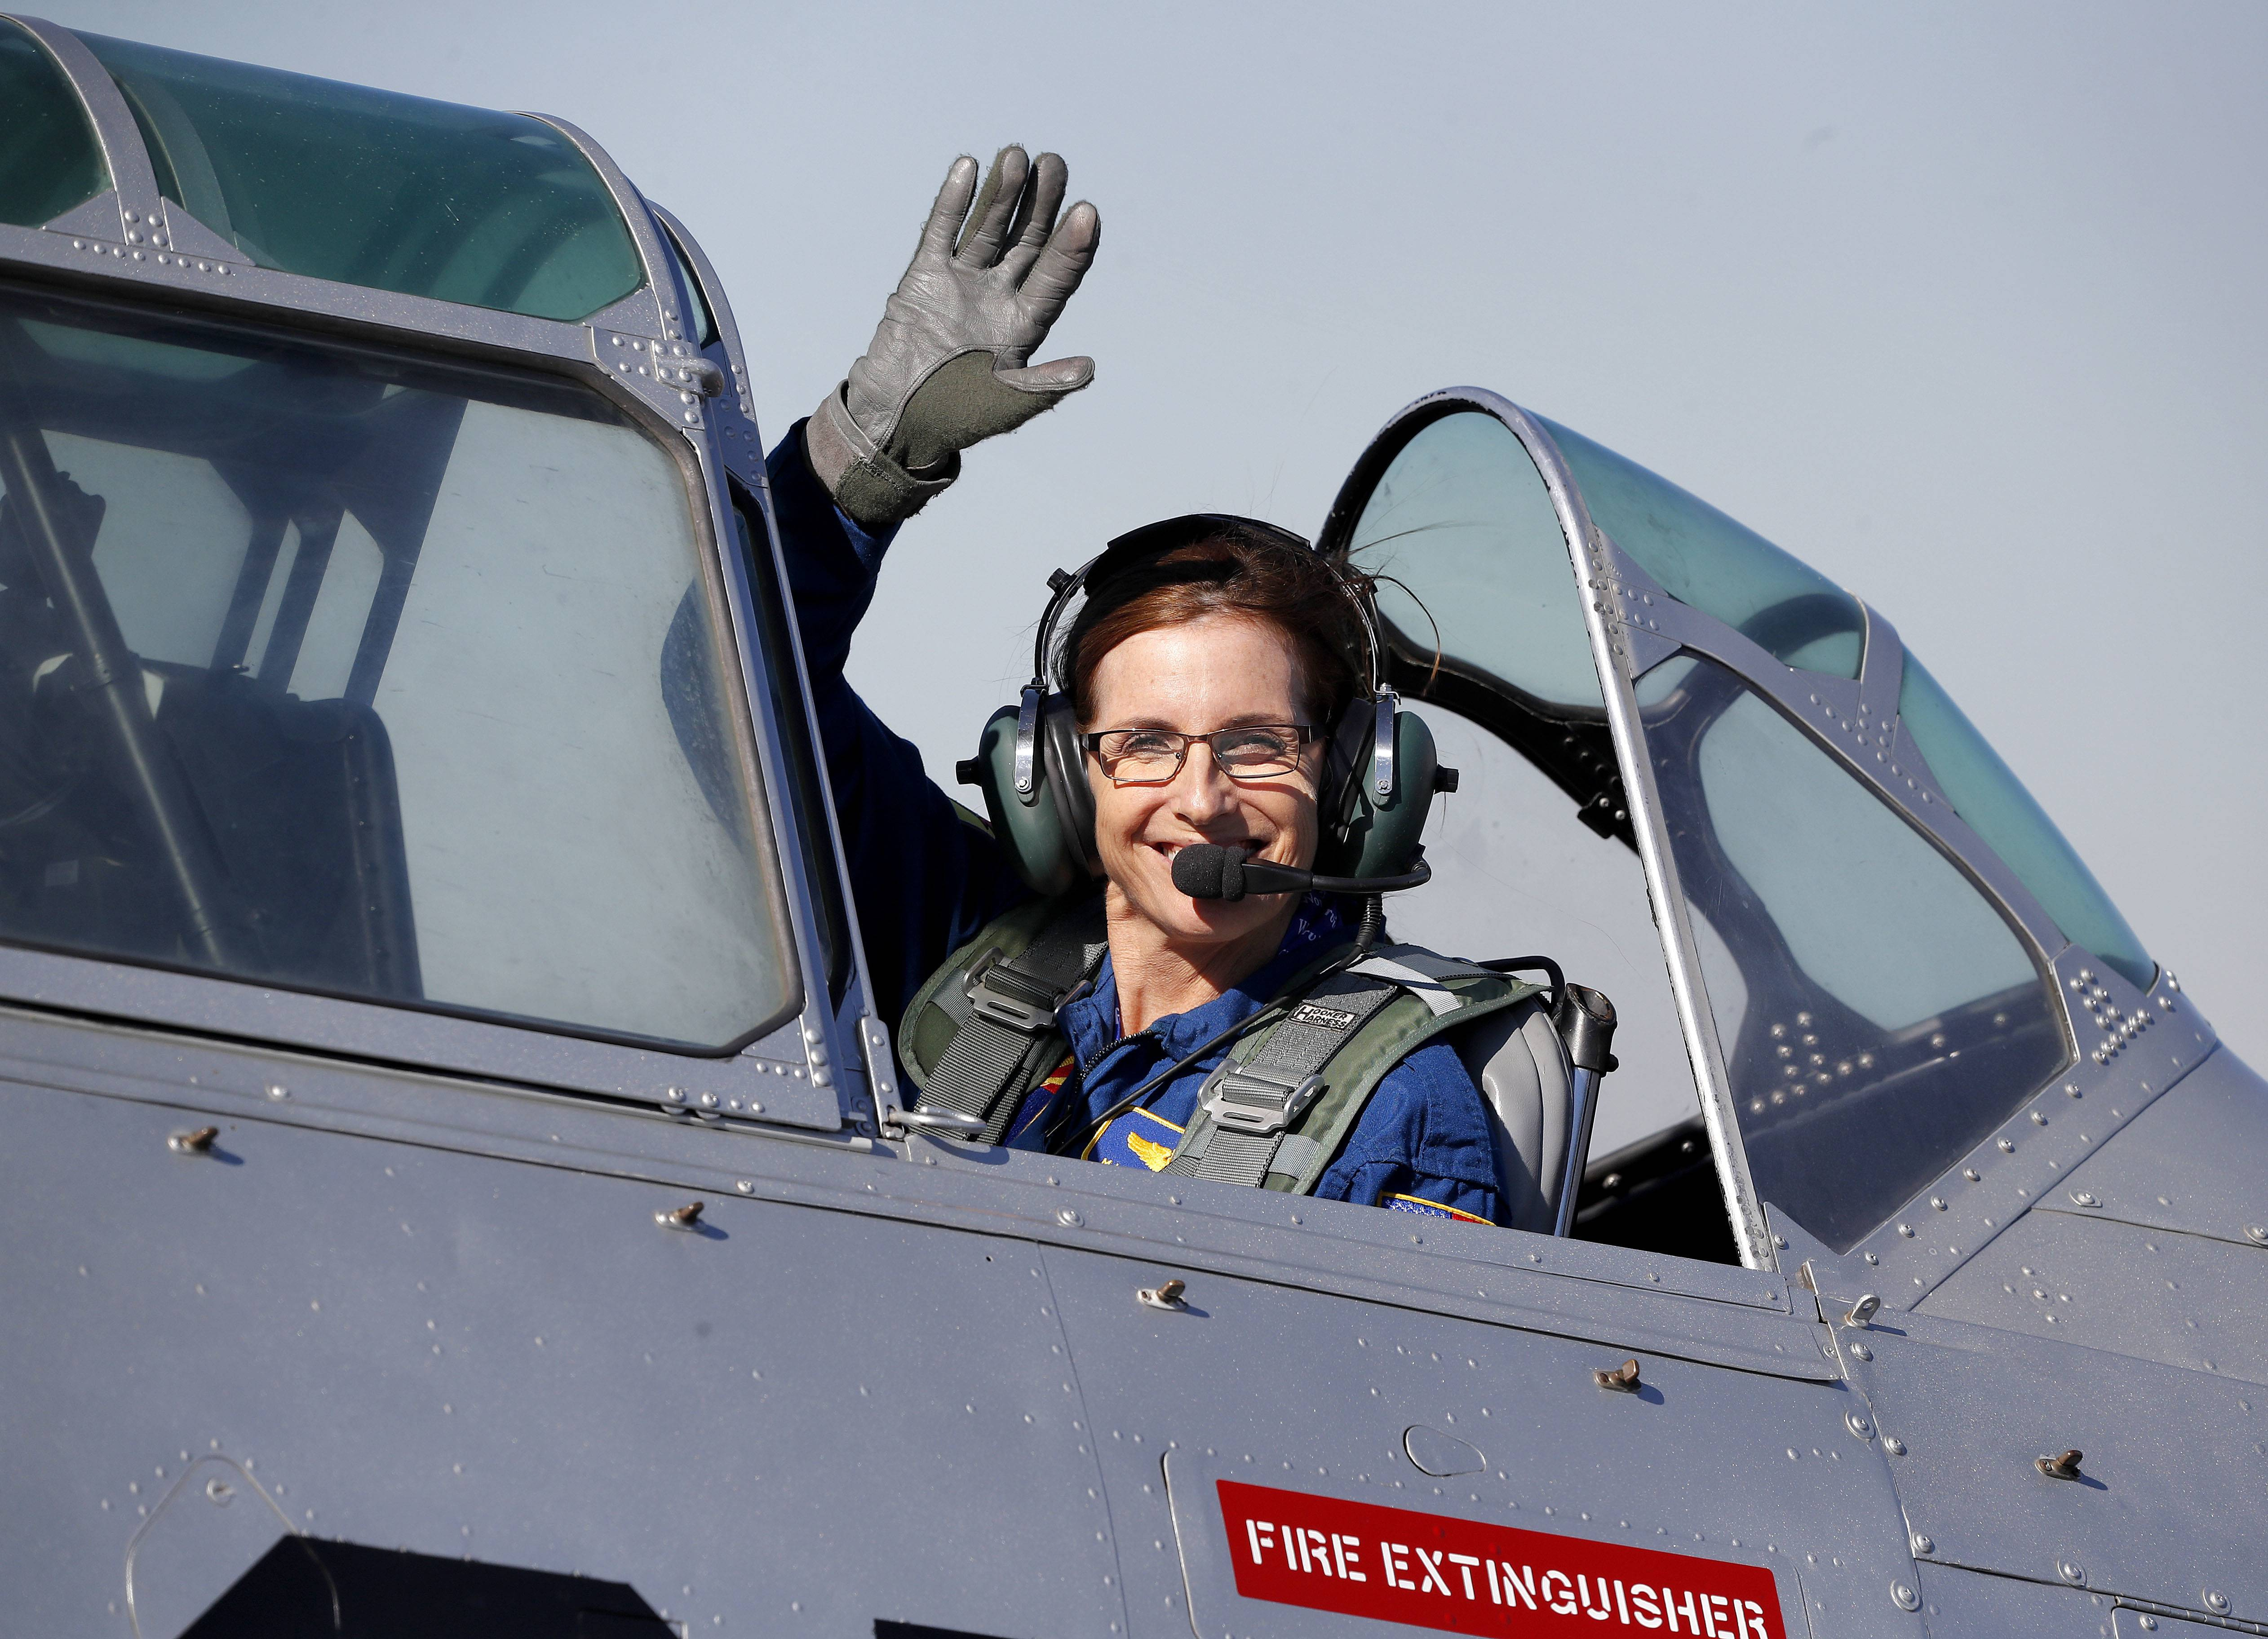 Rep. Martha McSally, an Arizona Republican, leaves in a T-6 World War II airplane after speaking at a rally in Phoenix. Women with military experience — many of them combat veterans — are among the record number of female candidates running for office this year.